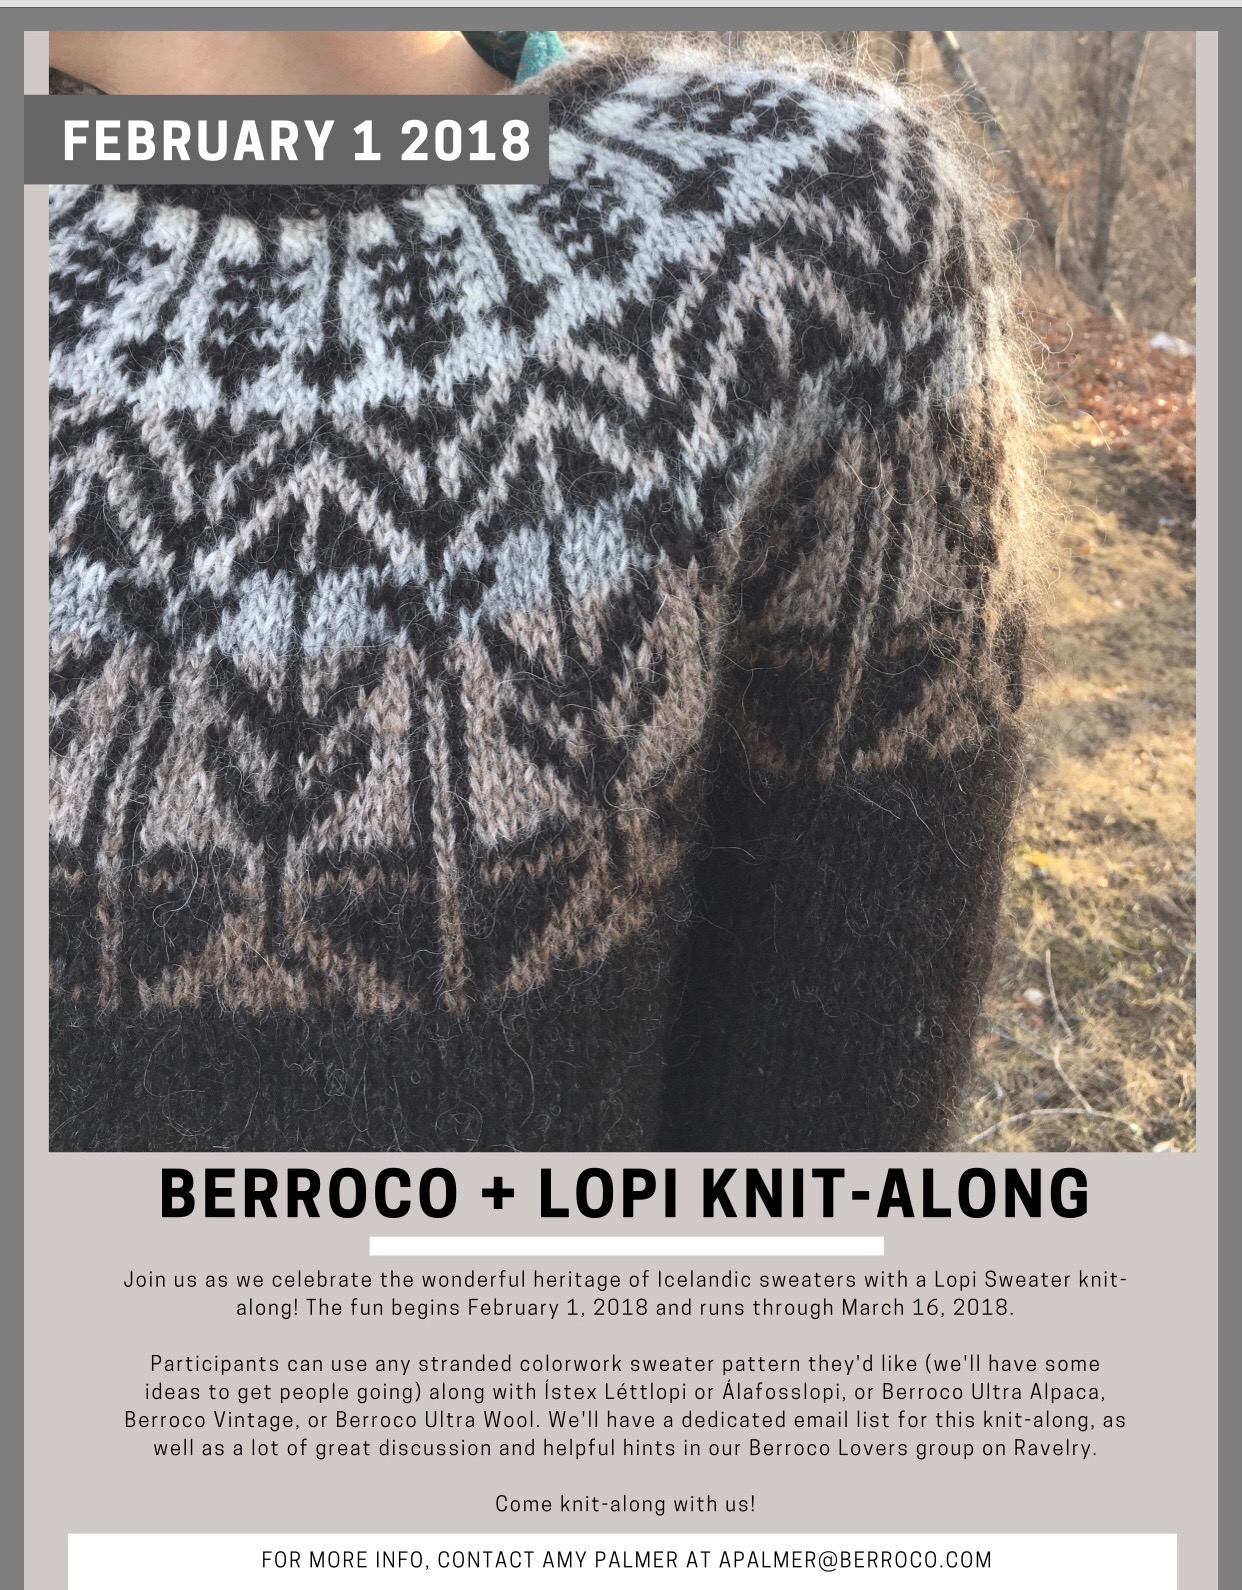 Free Lopi Knitting Patterns Free Pattern Fridays Friday January 19 2018 Brrrbut It Is